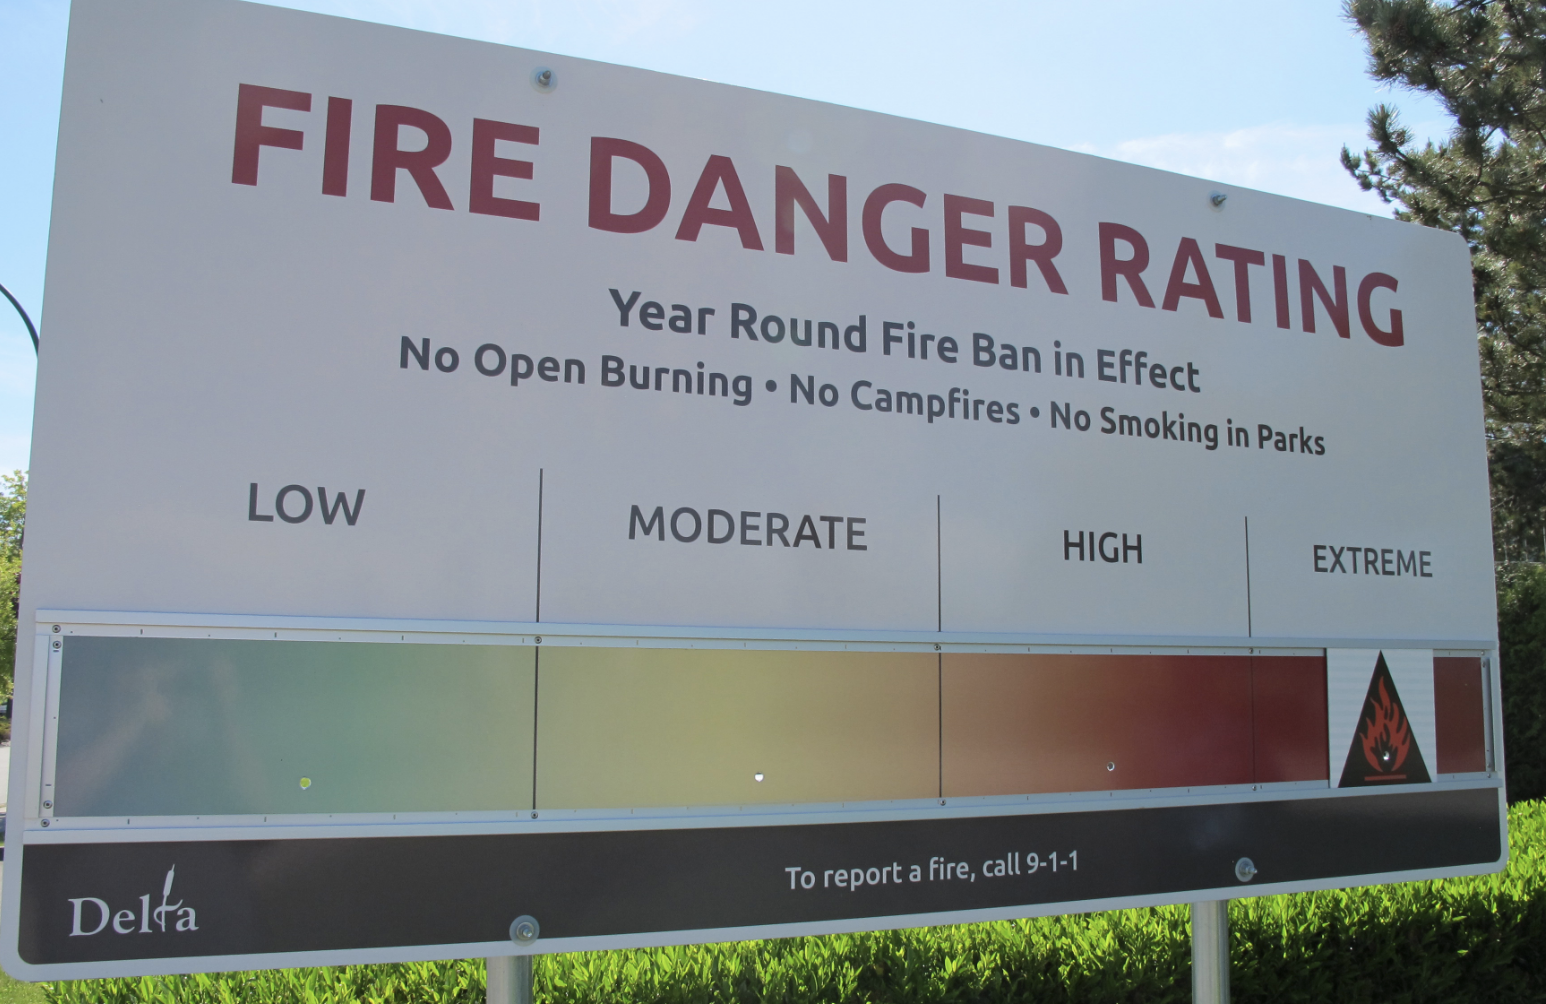 Fire Hazard Rating Raised to Extreme